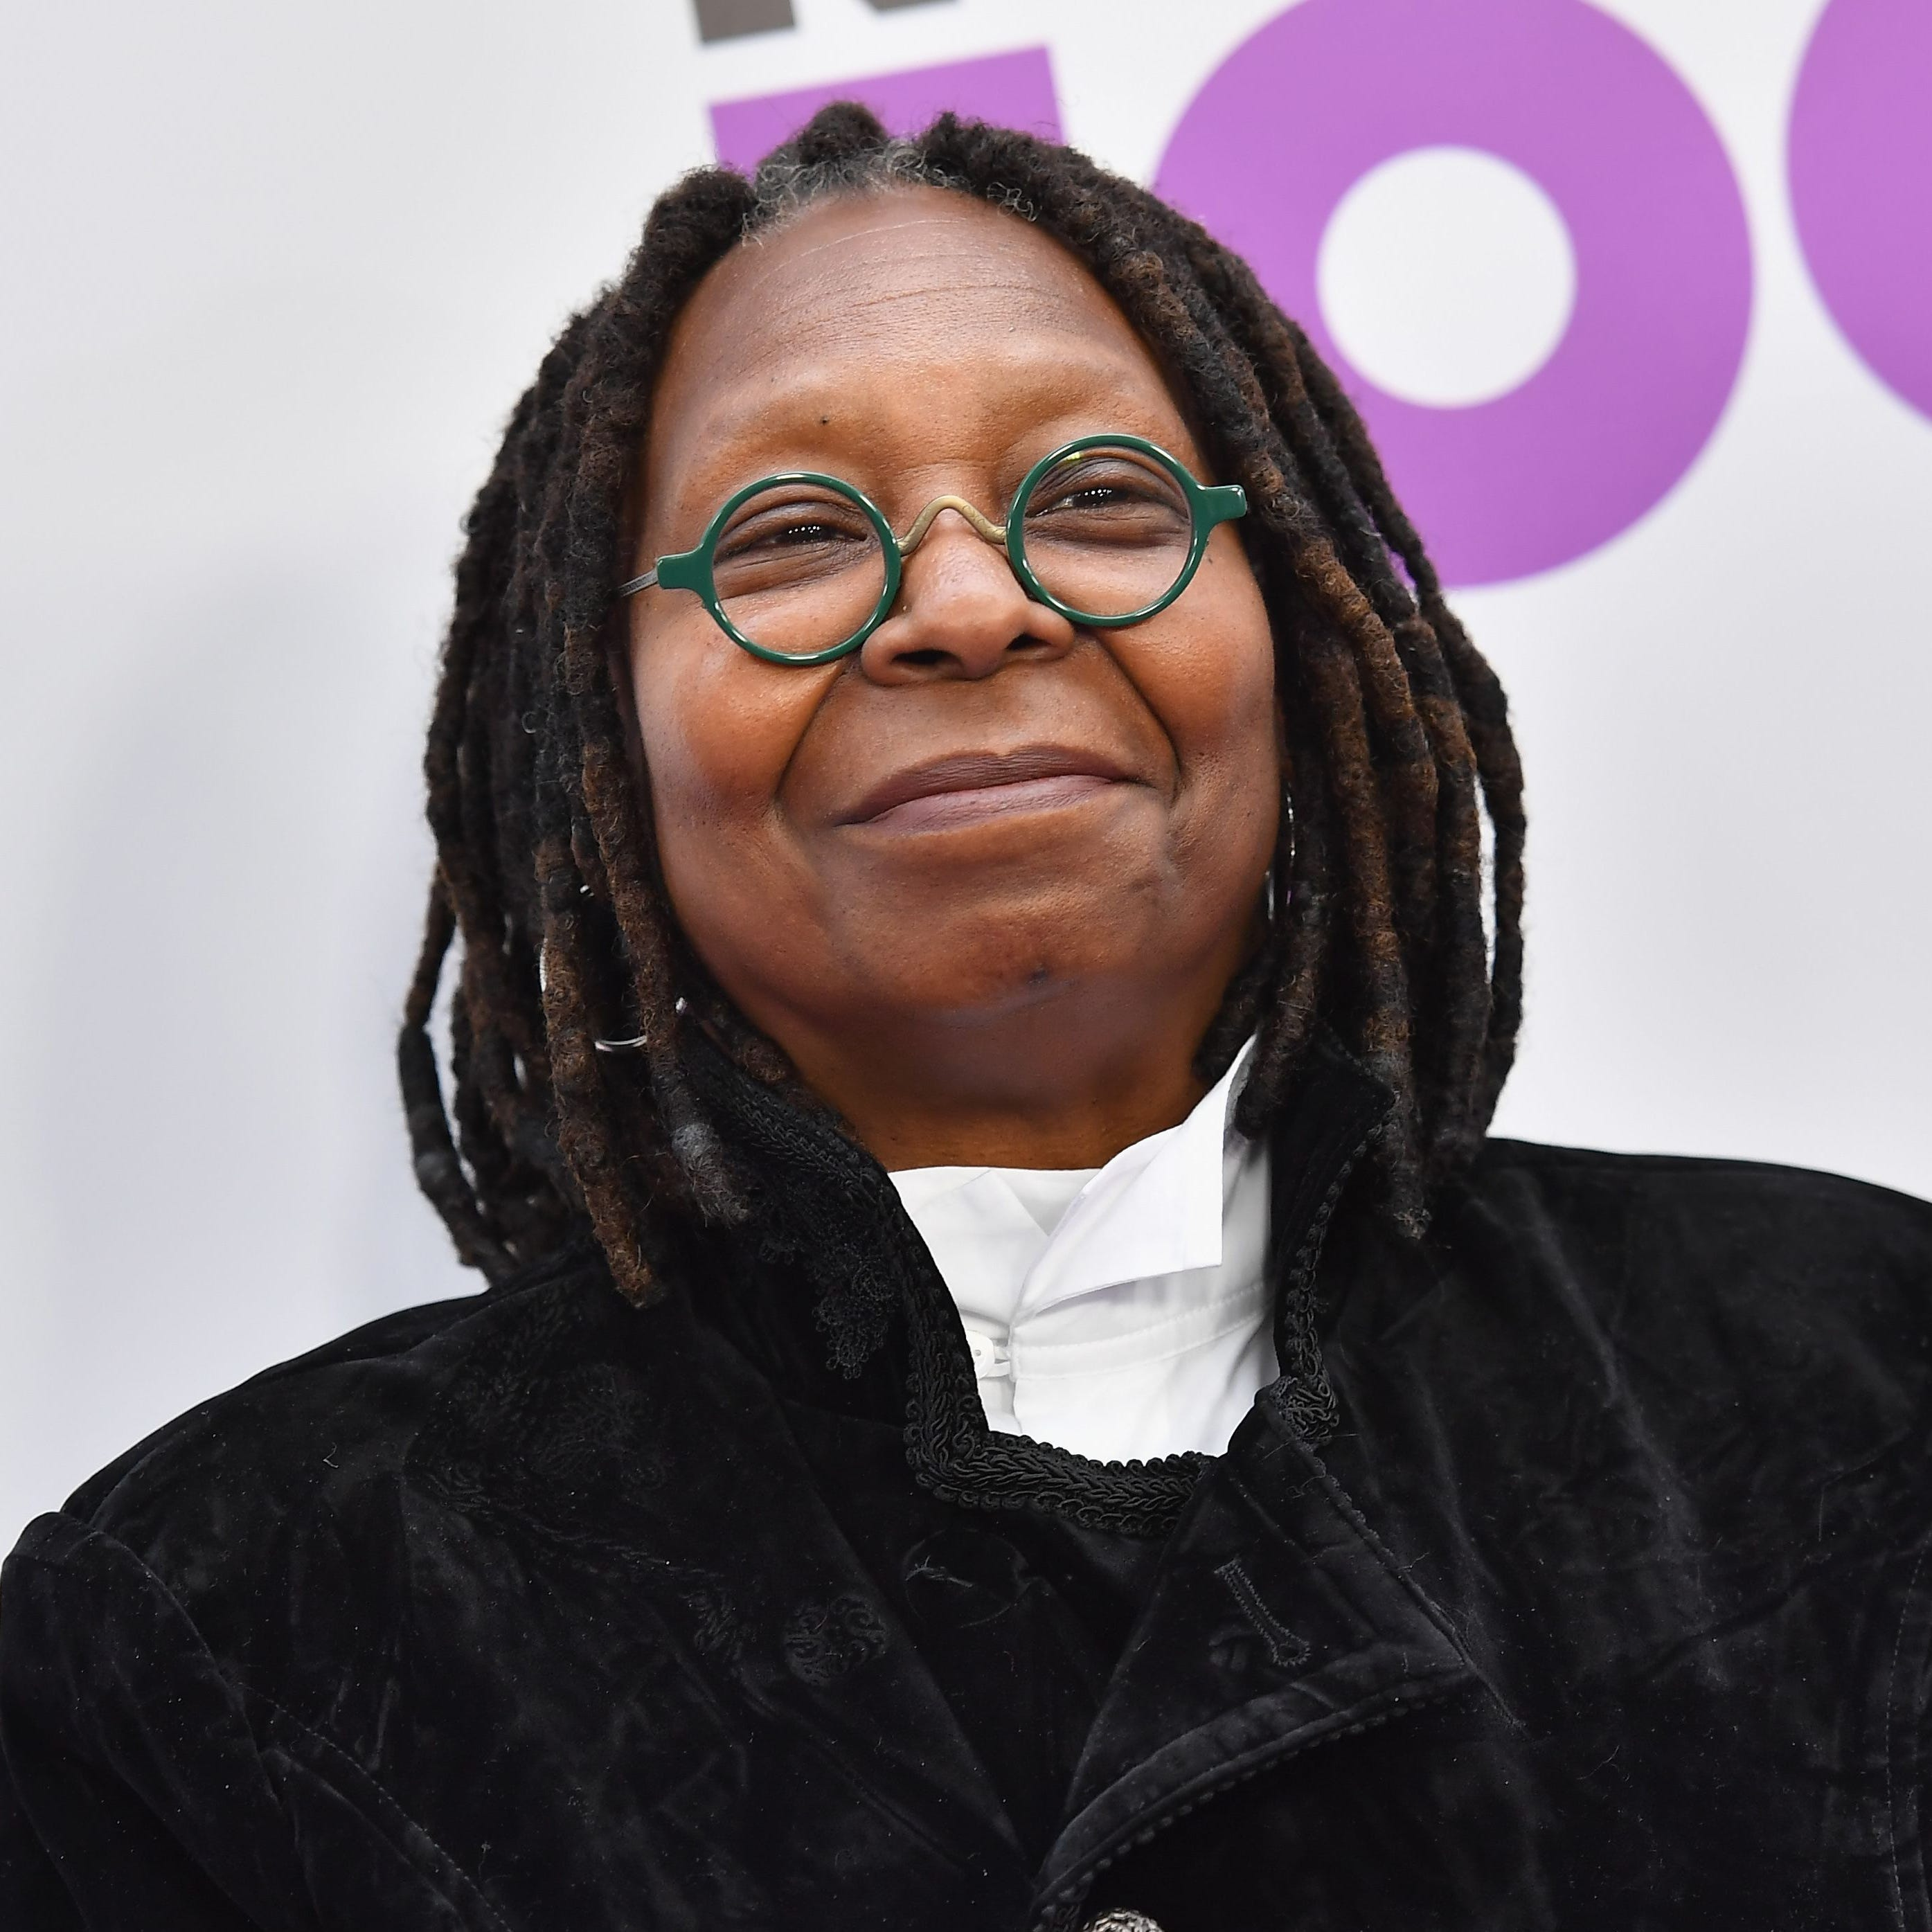 NJ Legal weed: Let adults be adults and legalize cannabis, says Whoopi Goldberg